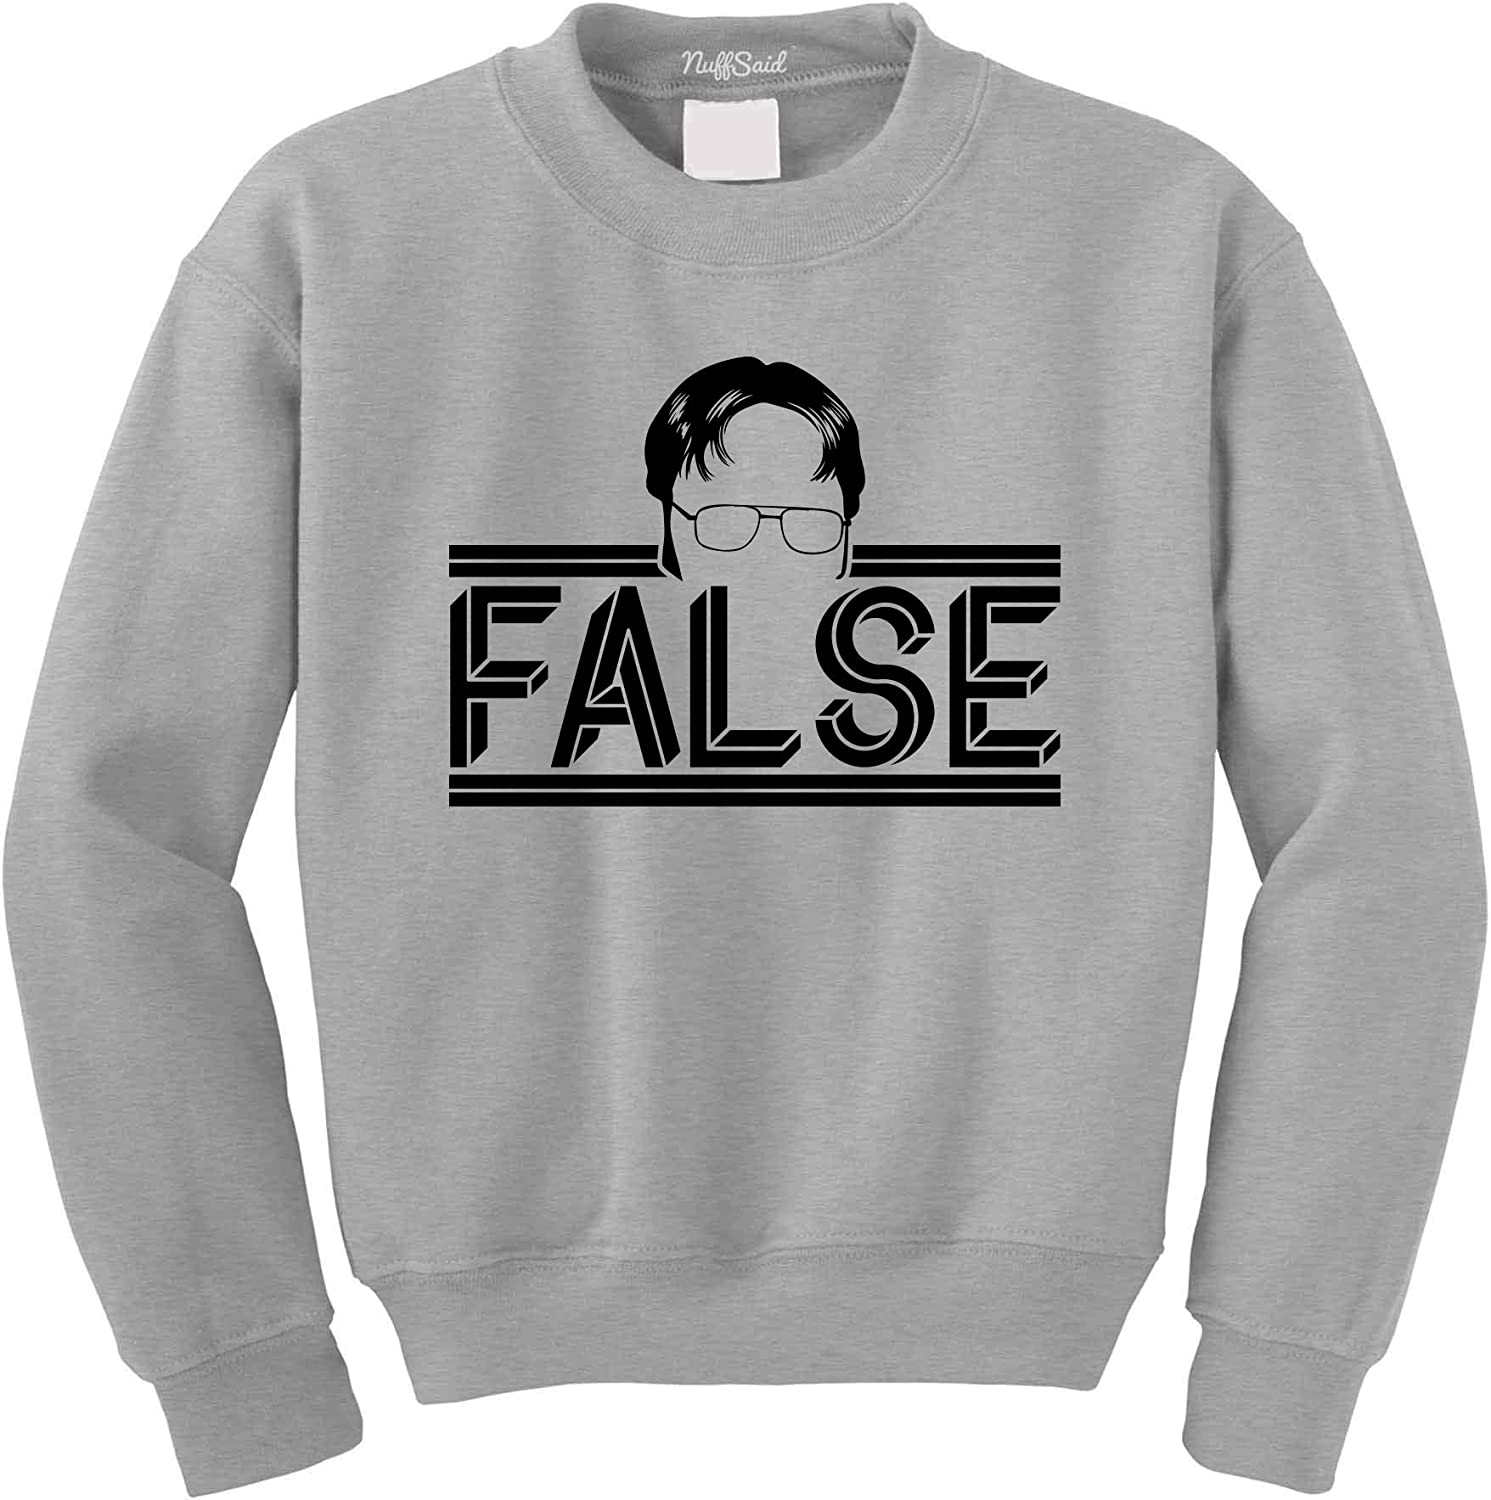 NuffSaid Dwight False Funny Pullover Sweatshirt Unisex Schrute Farms Graphic Office Crewneck